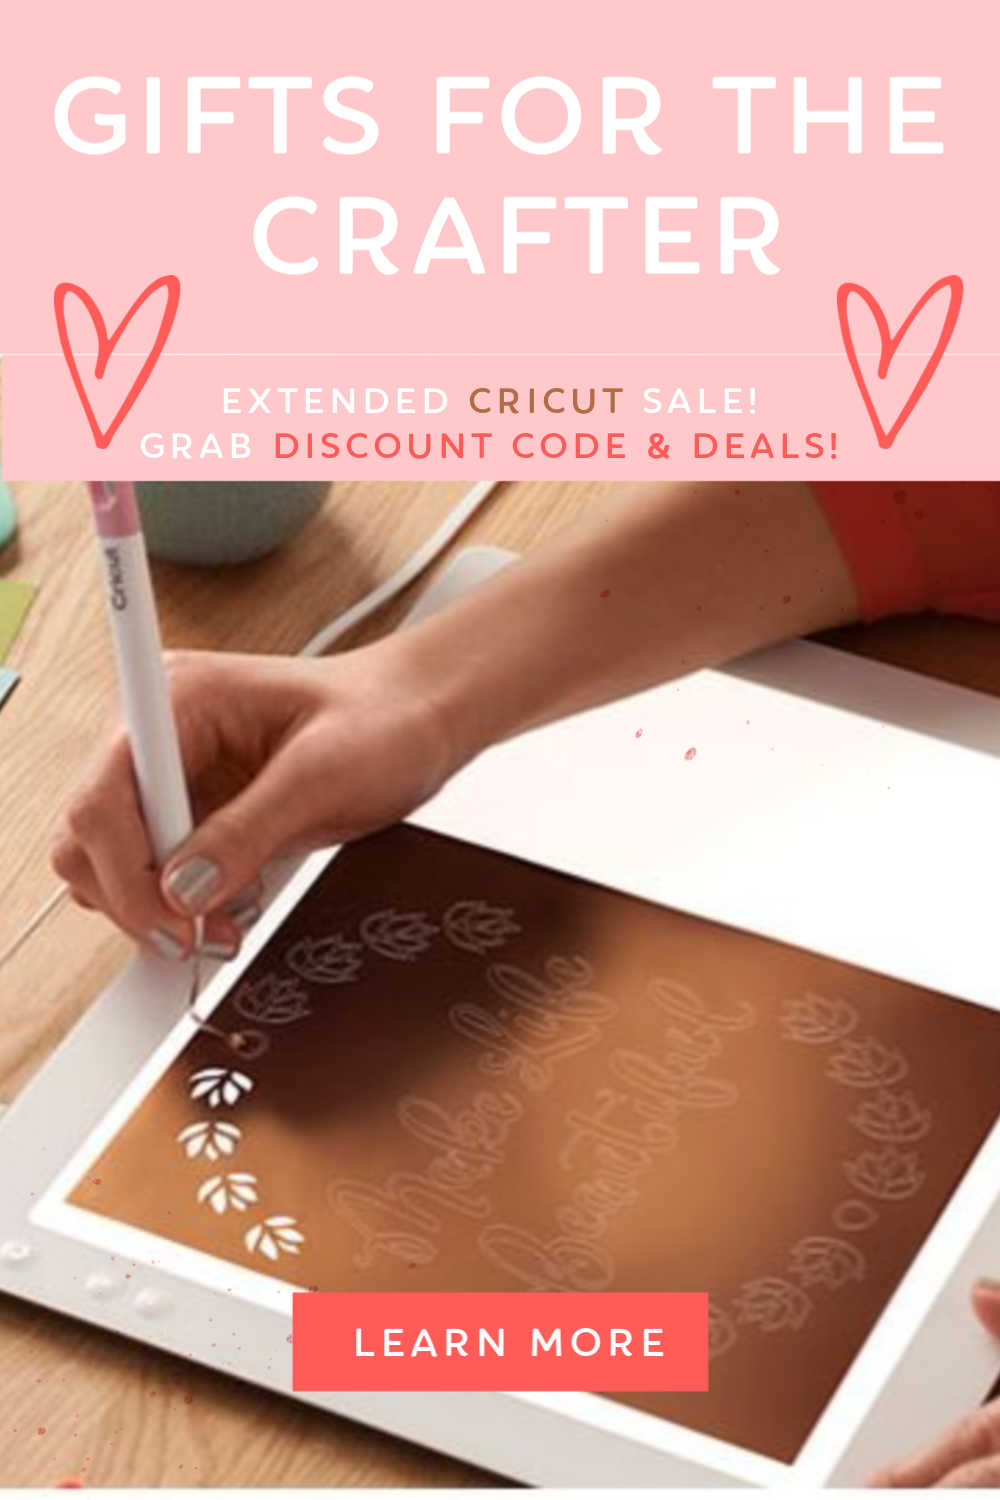 Cricut Sale Extended! Cricut Maker On Sale…